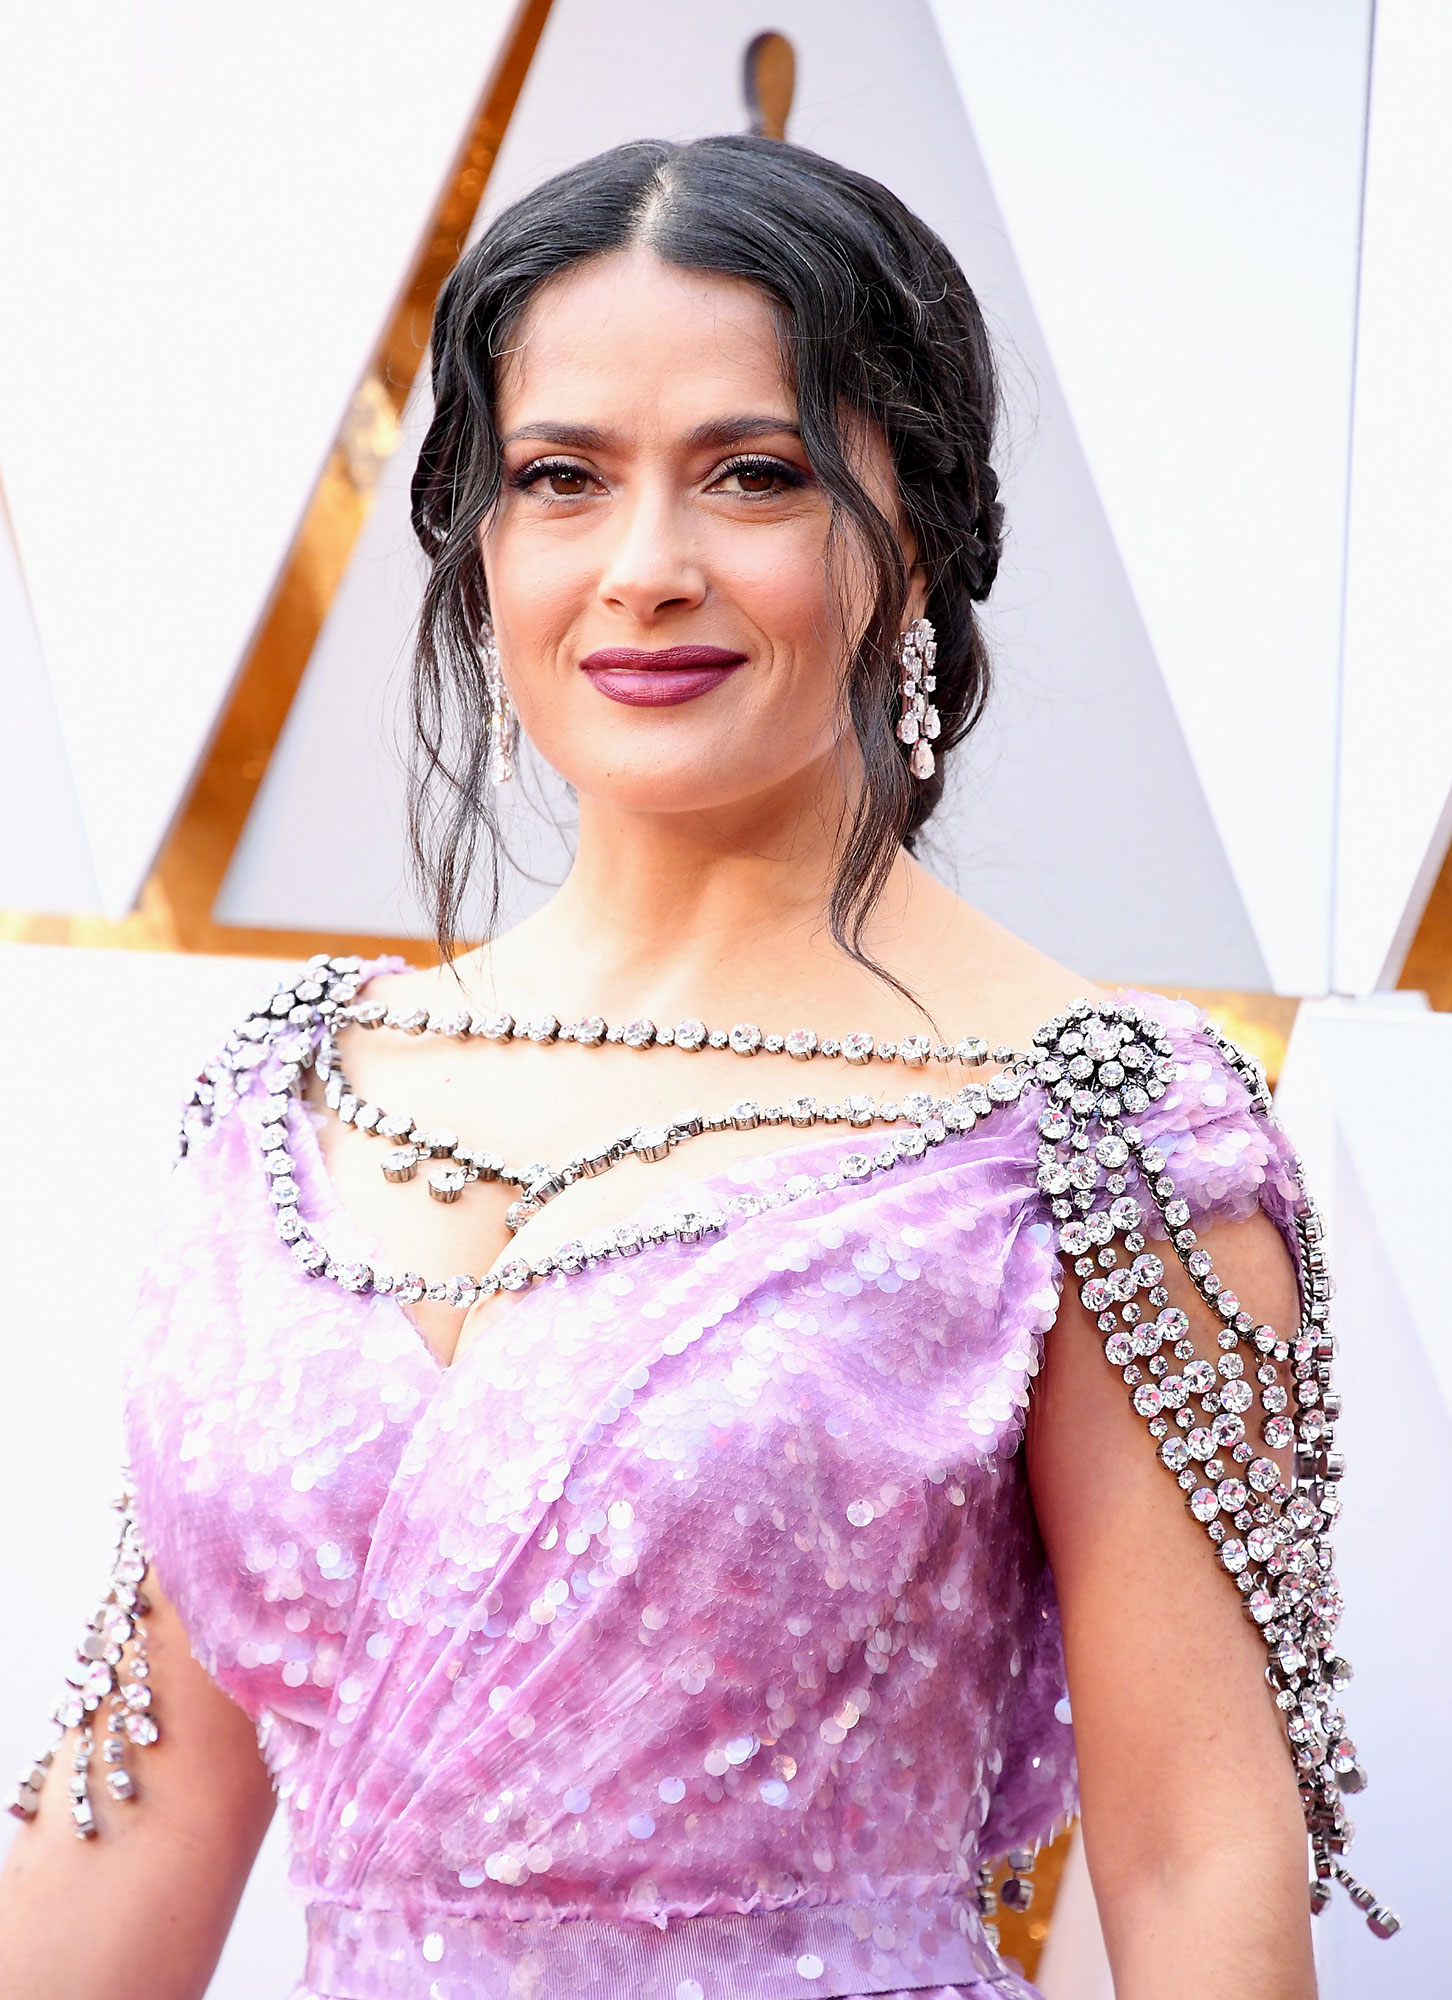 Salma Hayek - Stars Who Have Never Won Oscars - For all her films, the Hollywood heavyweight has just one Oscar nomination to date — 2002's Best Actress in a Leading Role for Frida .